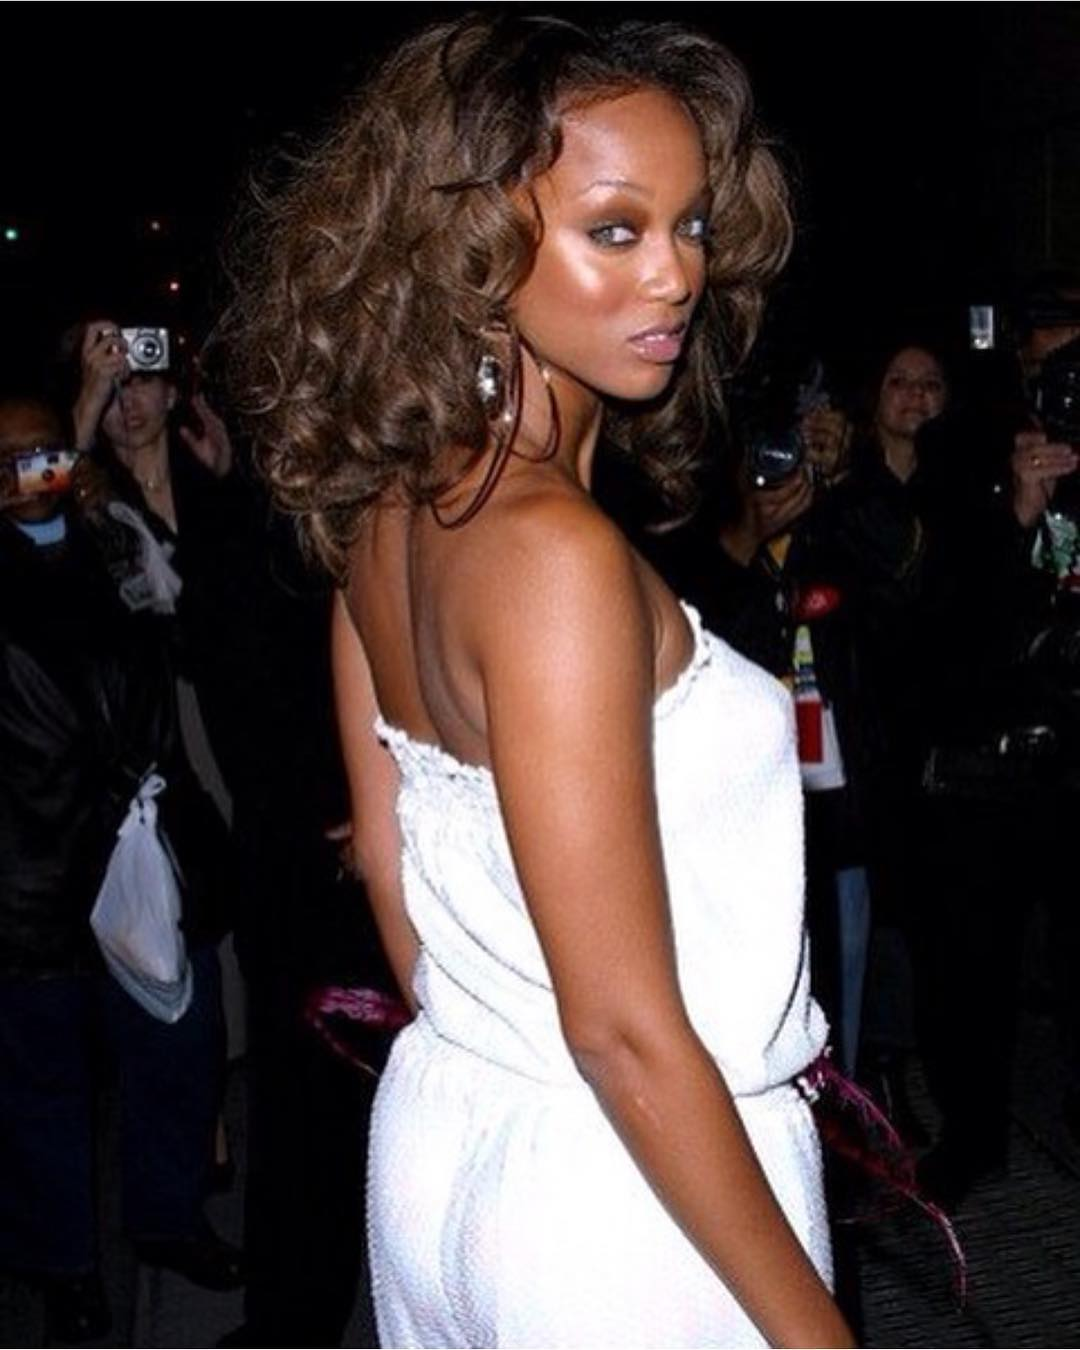 Тайра Бэнкс: Throwback to the days I didn't need a bra. #ThrowbackTyTy#DefyingGravity#Wicked!